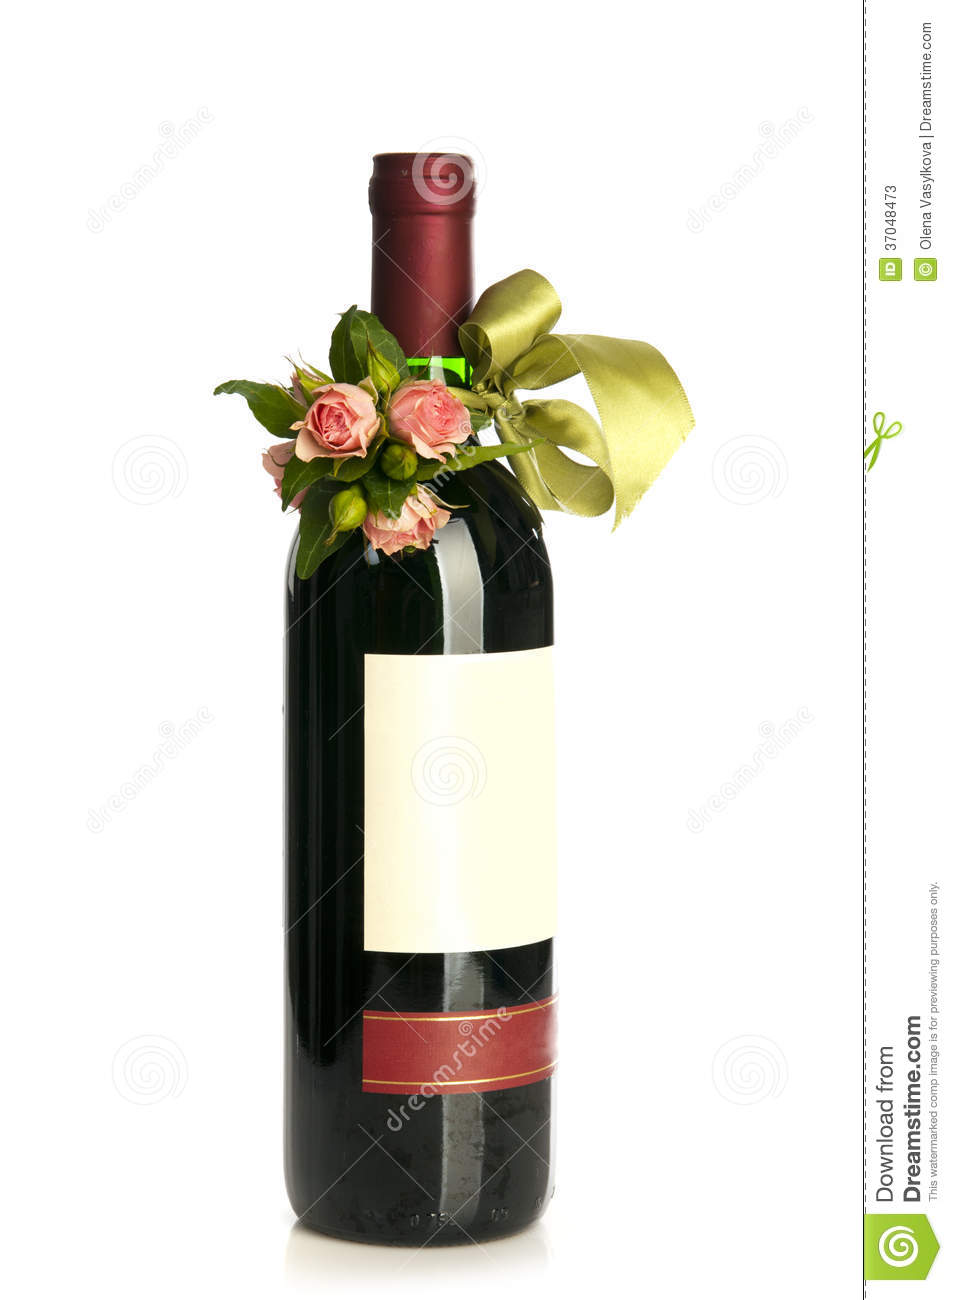 flower decorated wine bottle stock image image 37048473